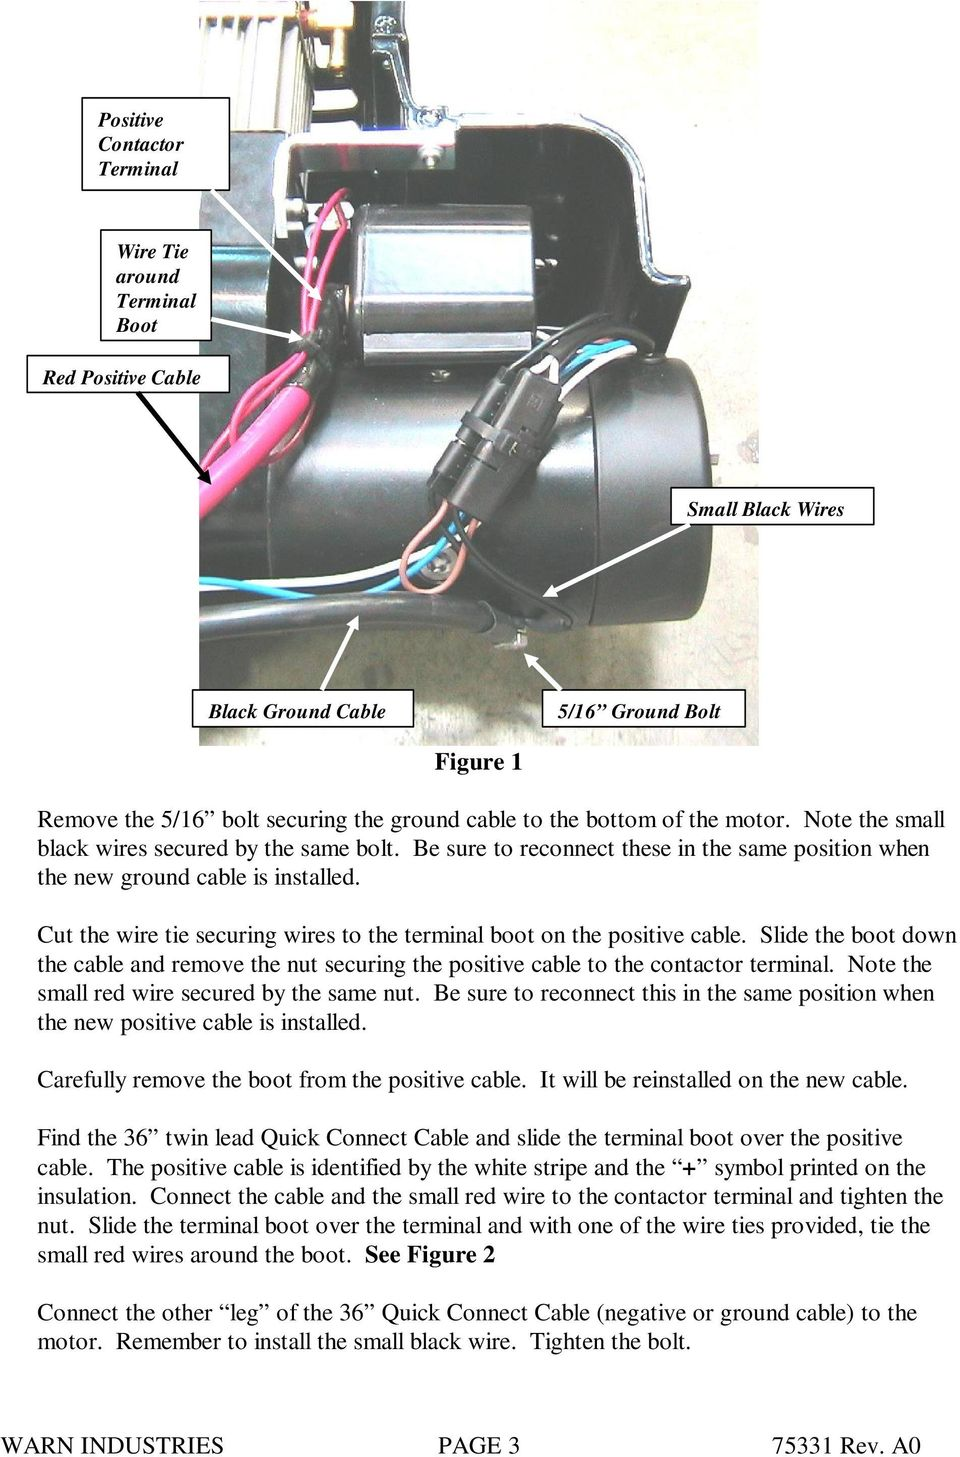 Cut the wire tie securing wires to the terminal boot on the positive cable. Slide the boot down the cable and remove the nut securing the positive cable to the contactor terminal.